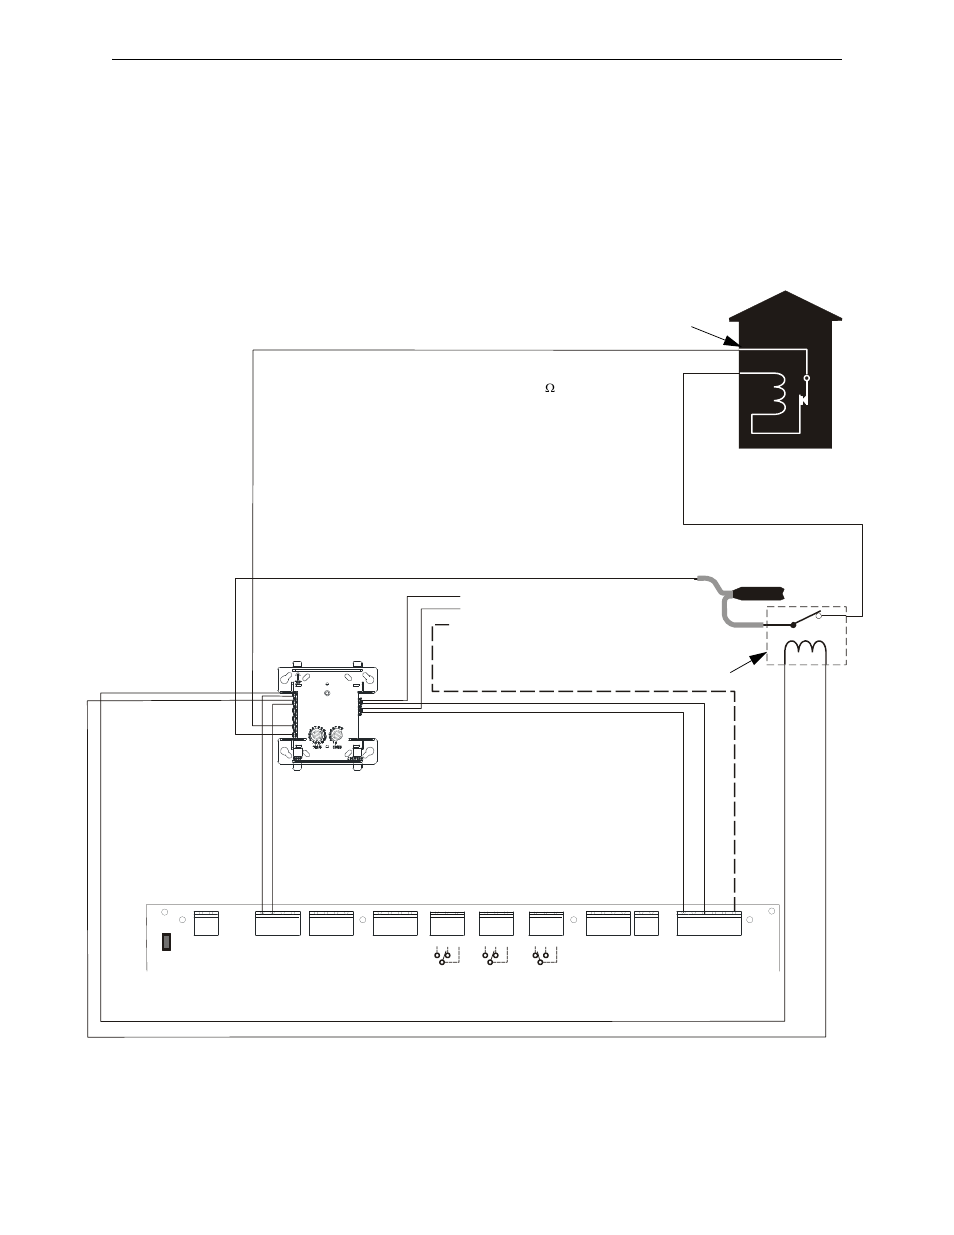 Fire Alarm Slc Diagram Wiring Schematic House Wire Diagrams C 2 Mbt 1 Municipal Box Trip Silenceable